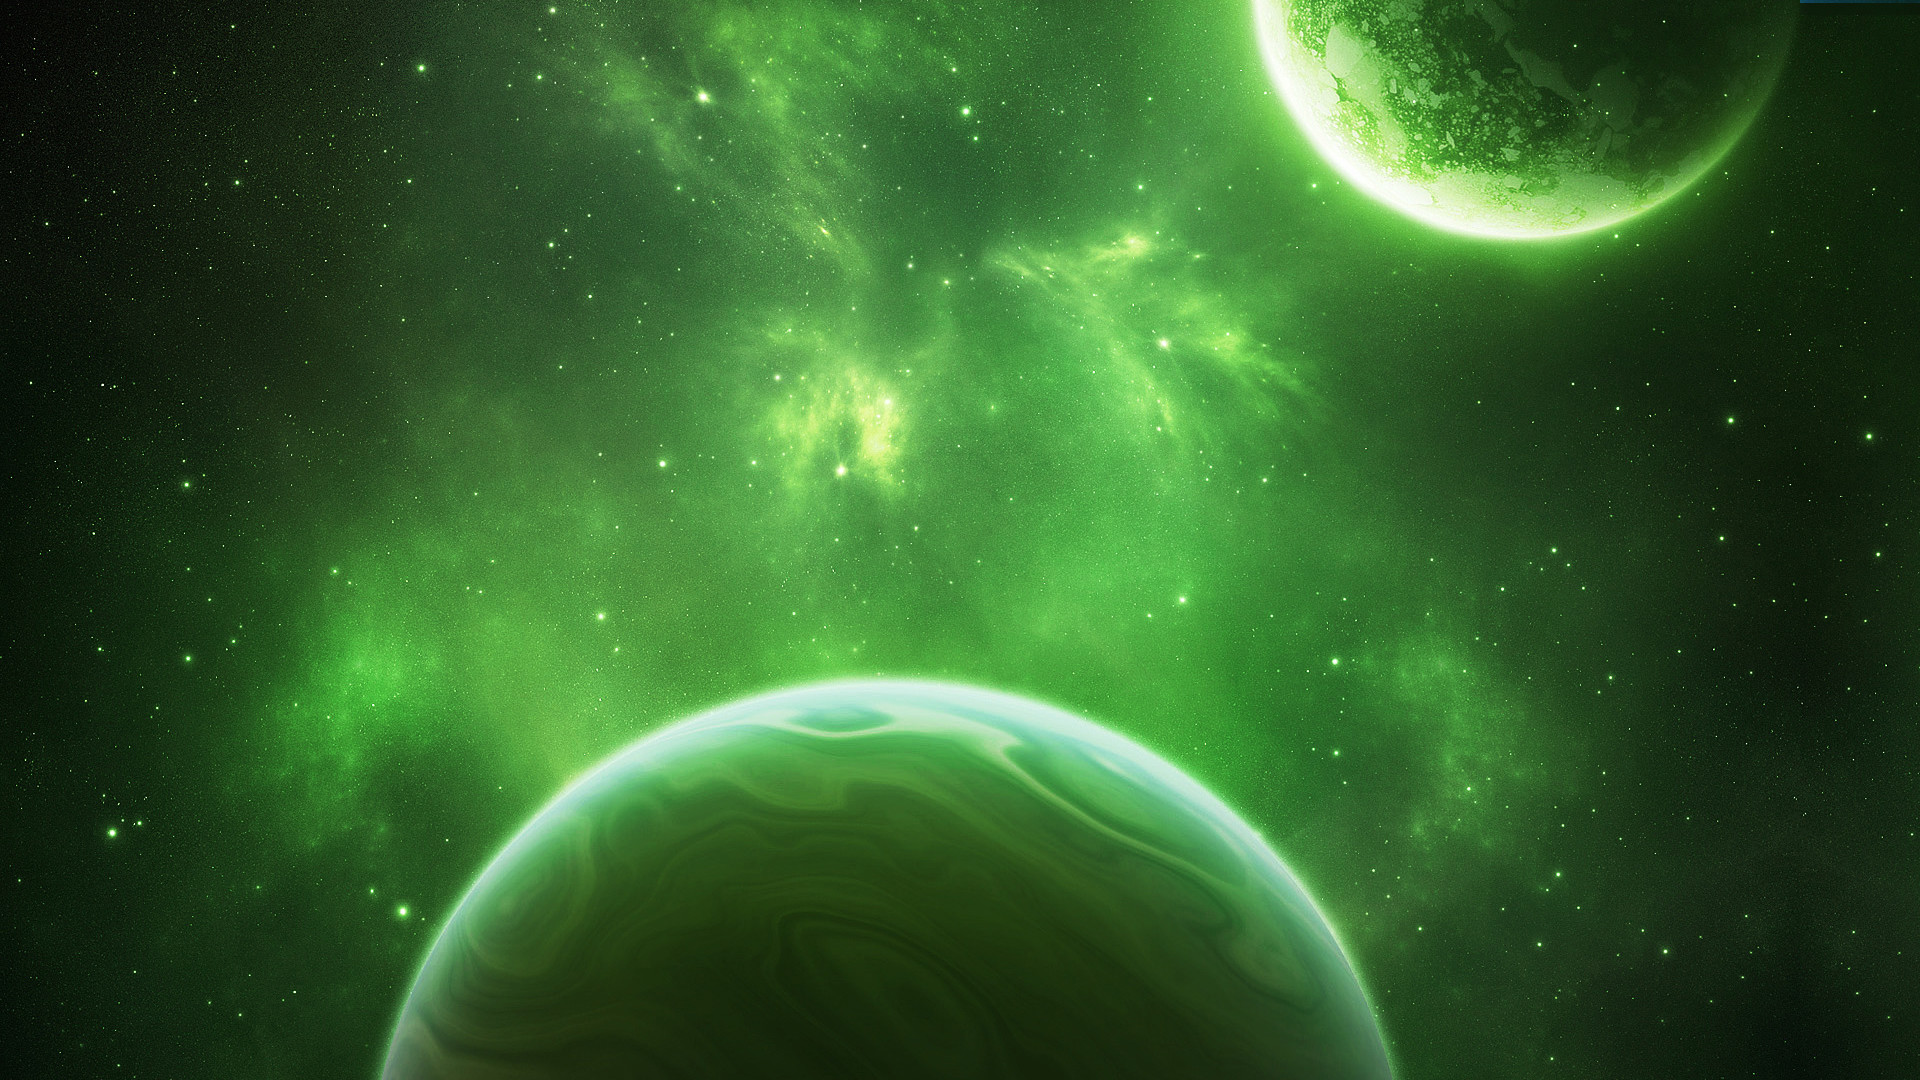 1920x1080 Related Wallpapers from Awesome Space Screensavers. Green Space